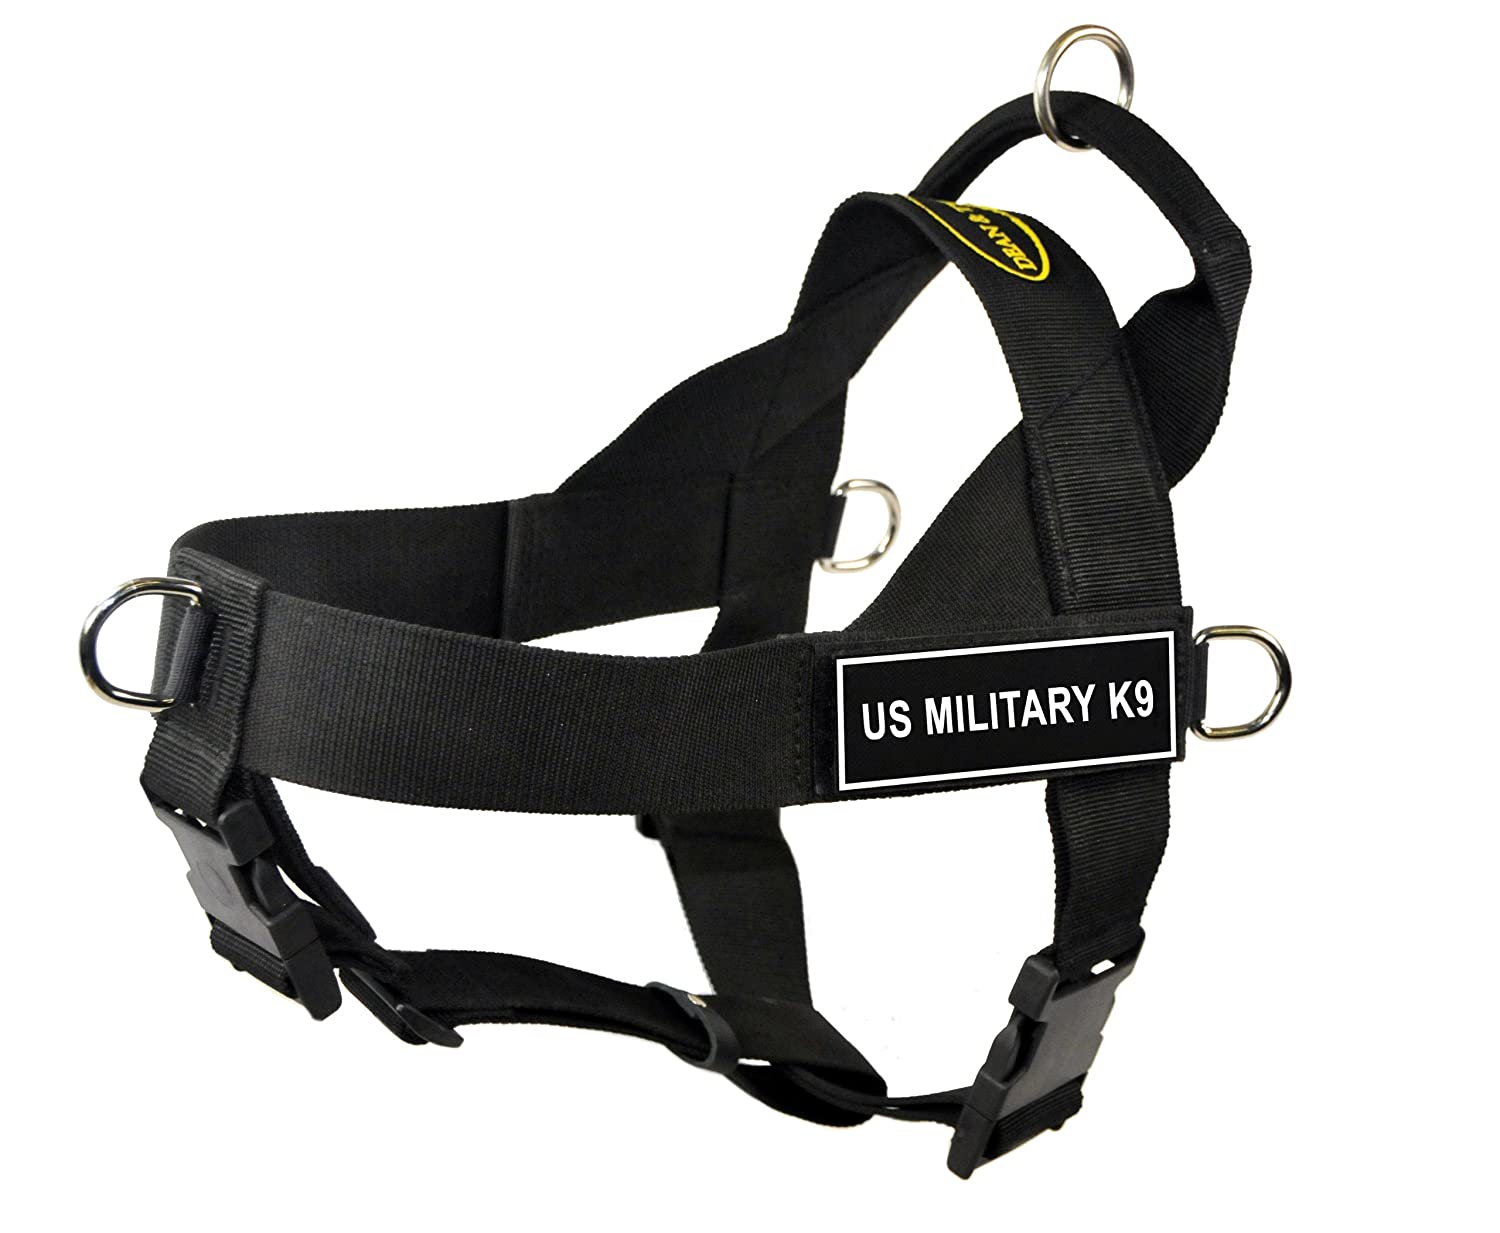 Dean & Tyler Universal No Pull 24-Inch to 27-Inch Dog Harness, Small, US Military K9, Black